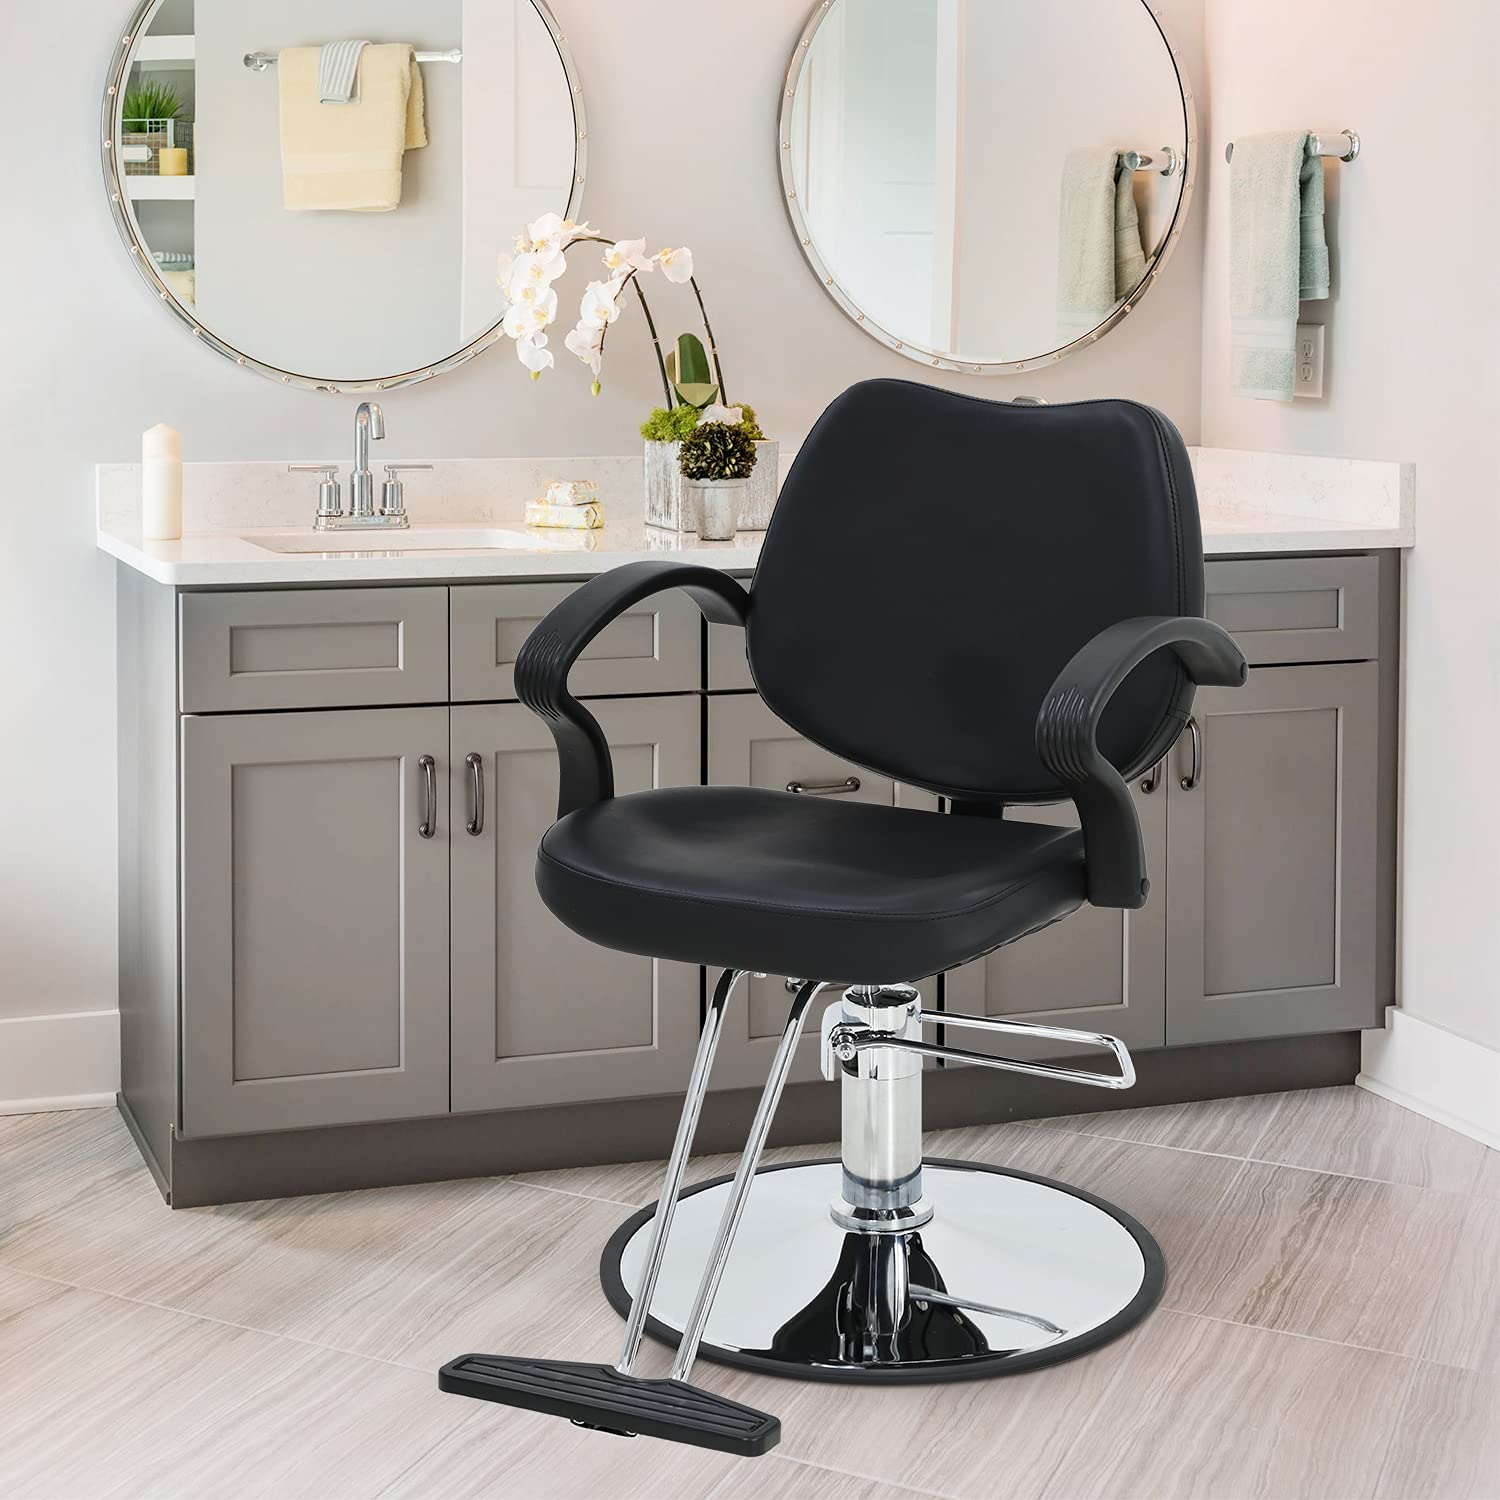 Barber Chair with Heavy Duty Hydraulic Charlotte Mall Leather Ad Height Pump PU Fixed price for sale